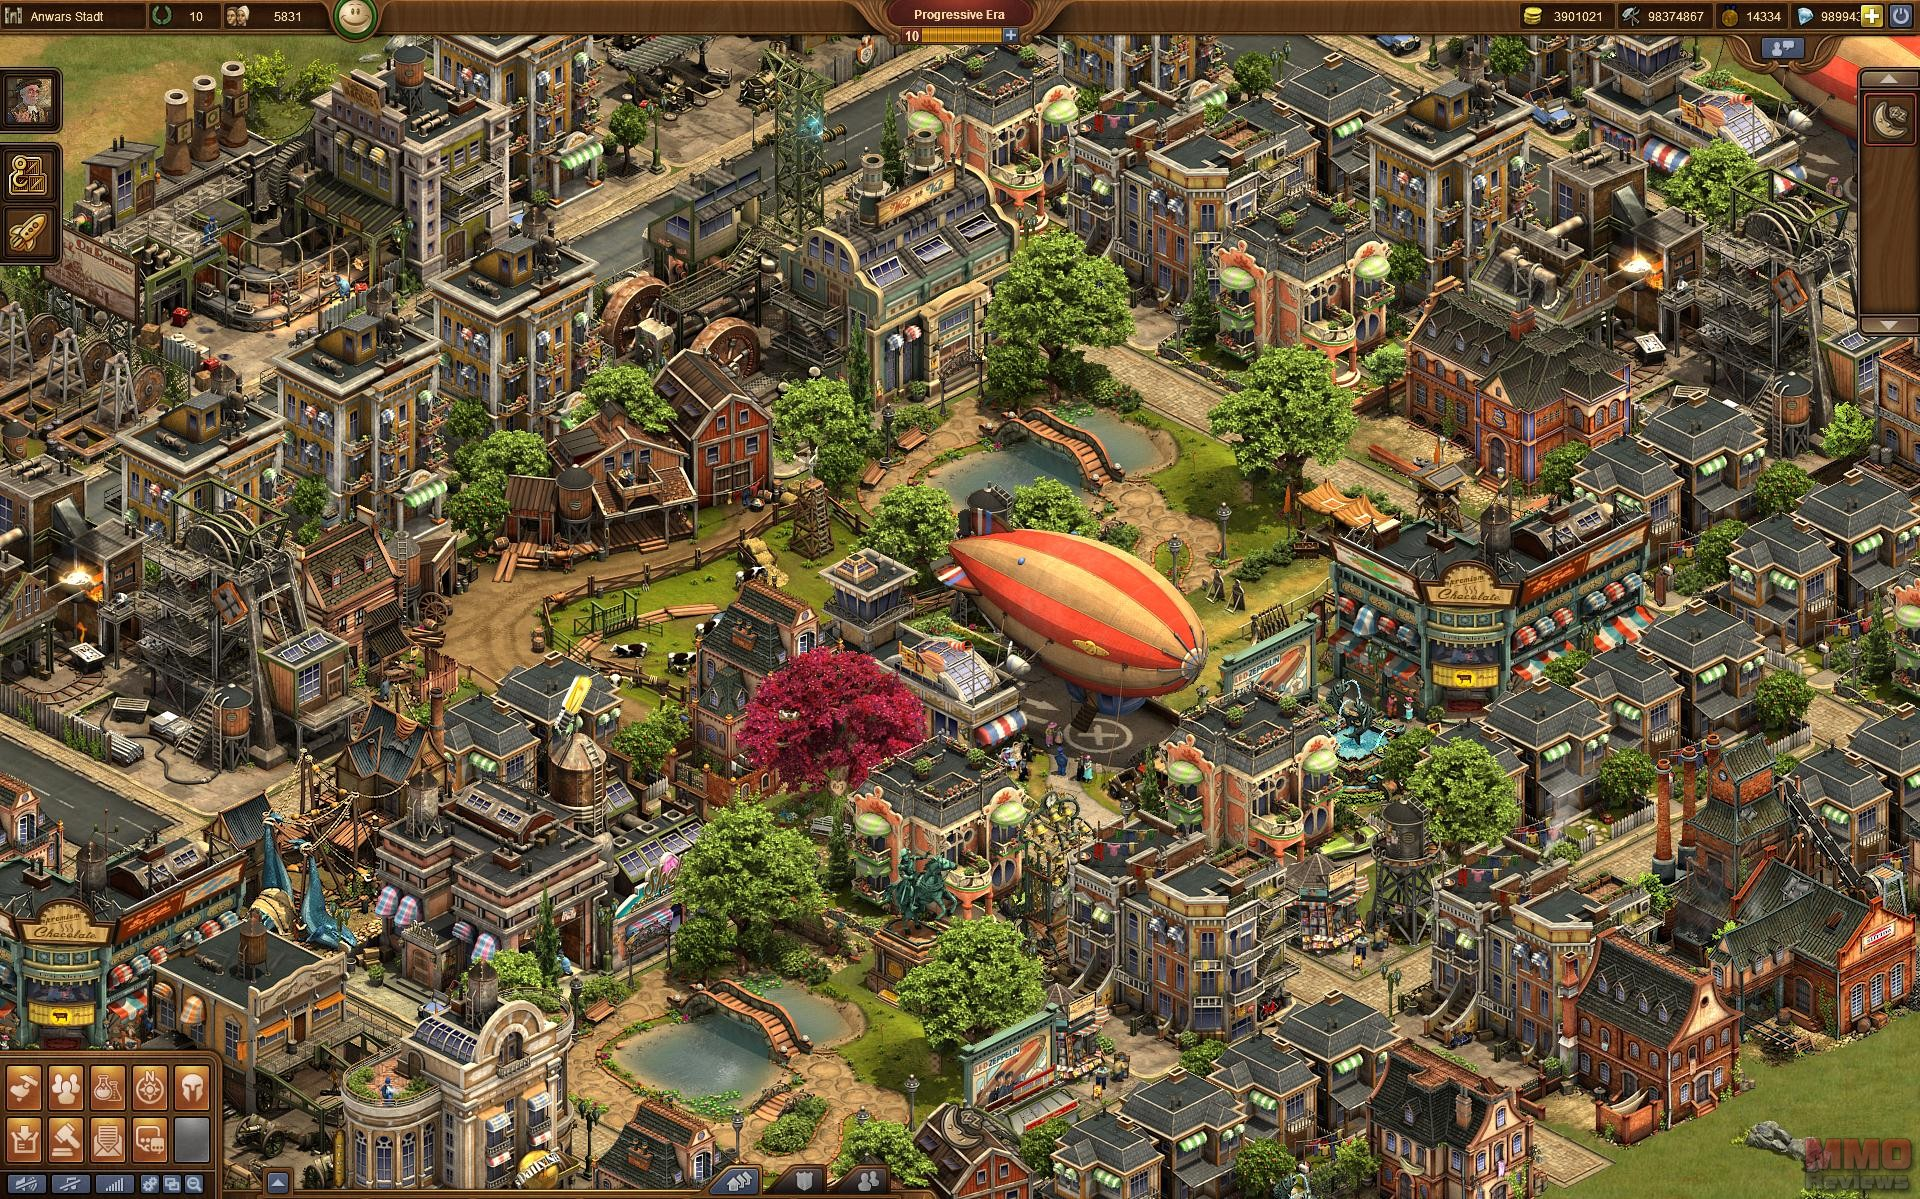 Forge of Empires at Gamescom 2015 Reviews - Forge of Empires at ...